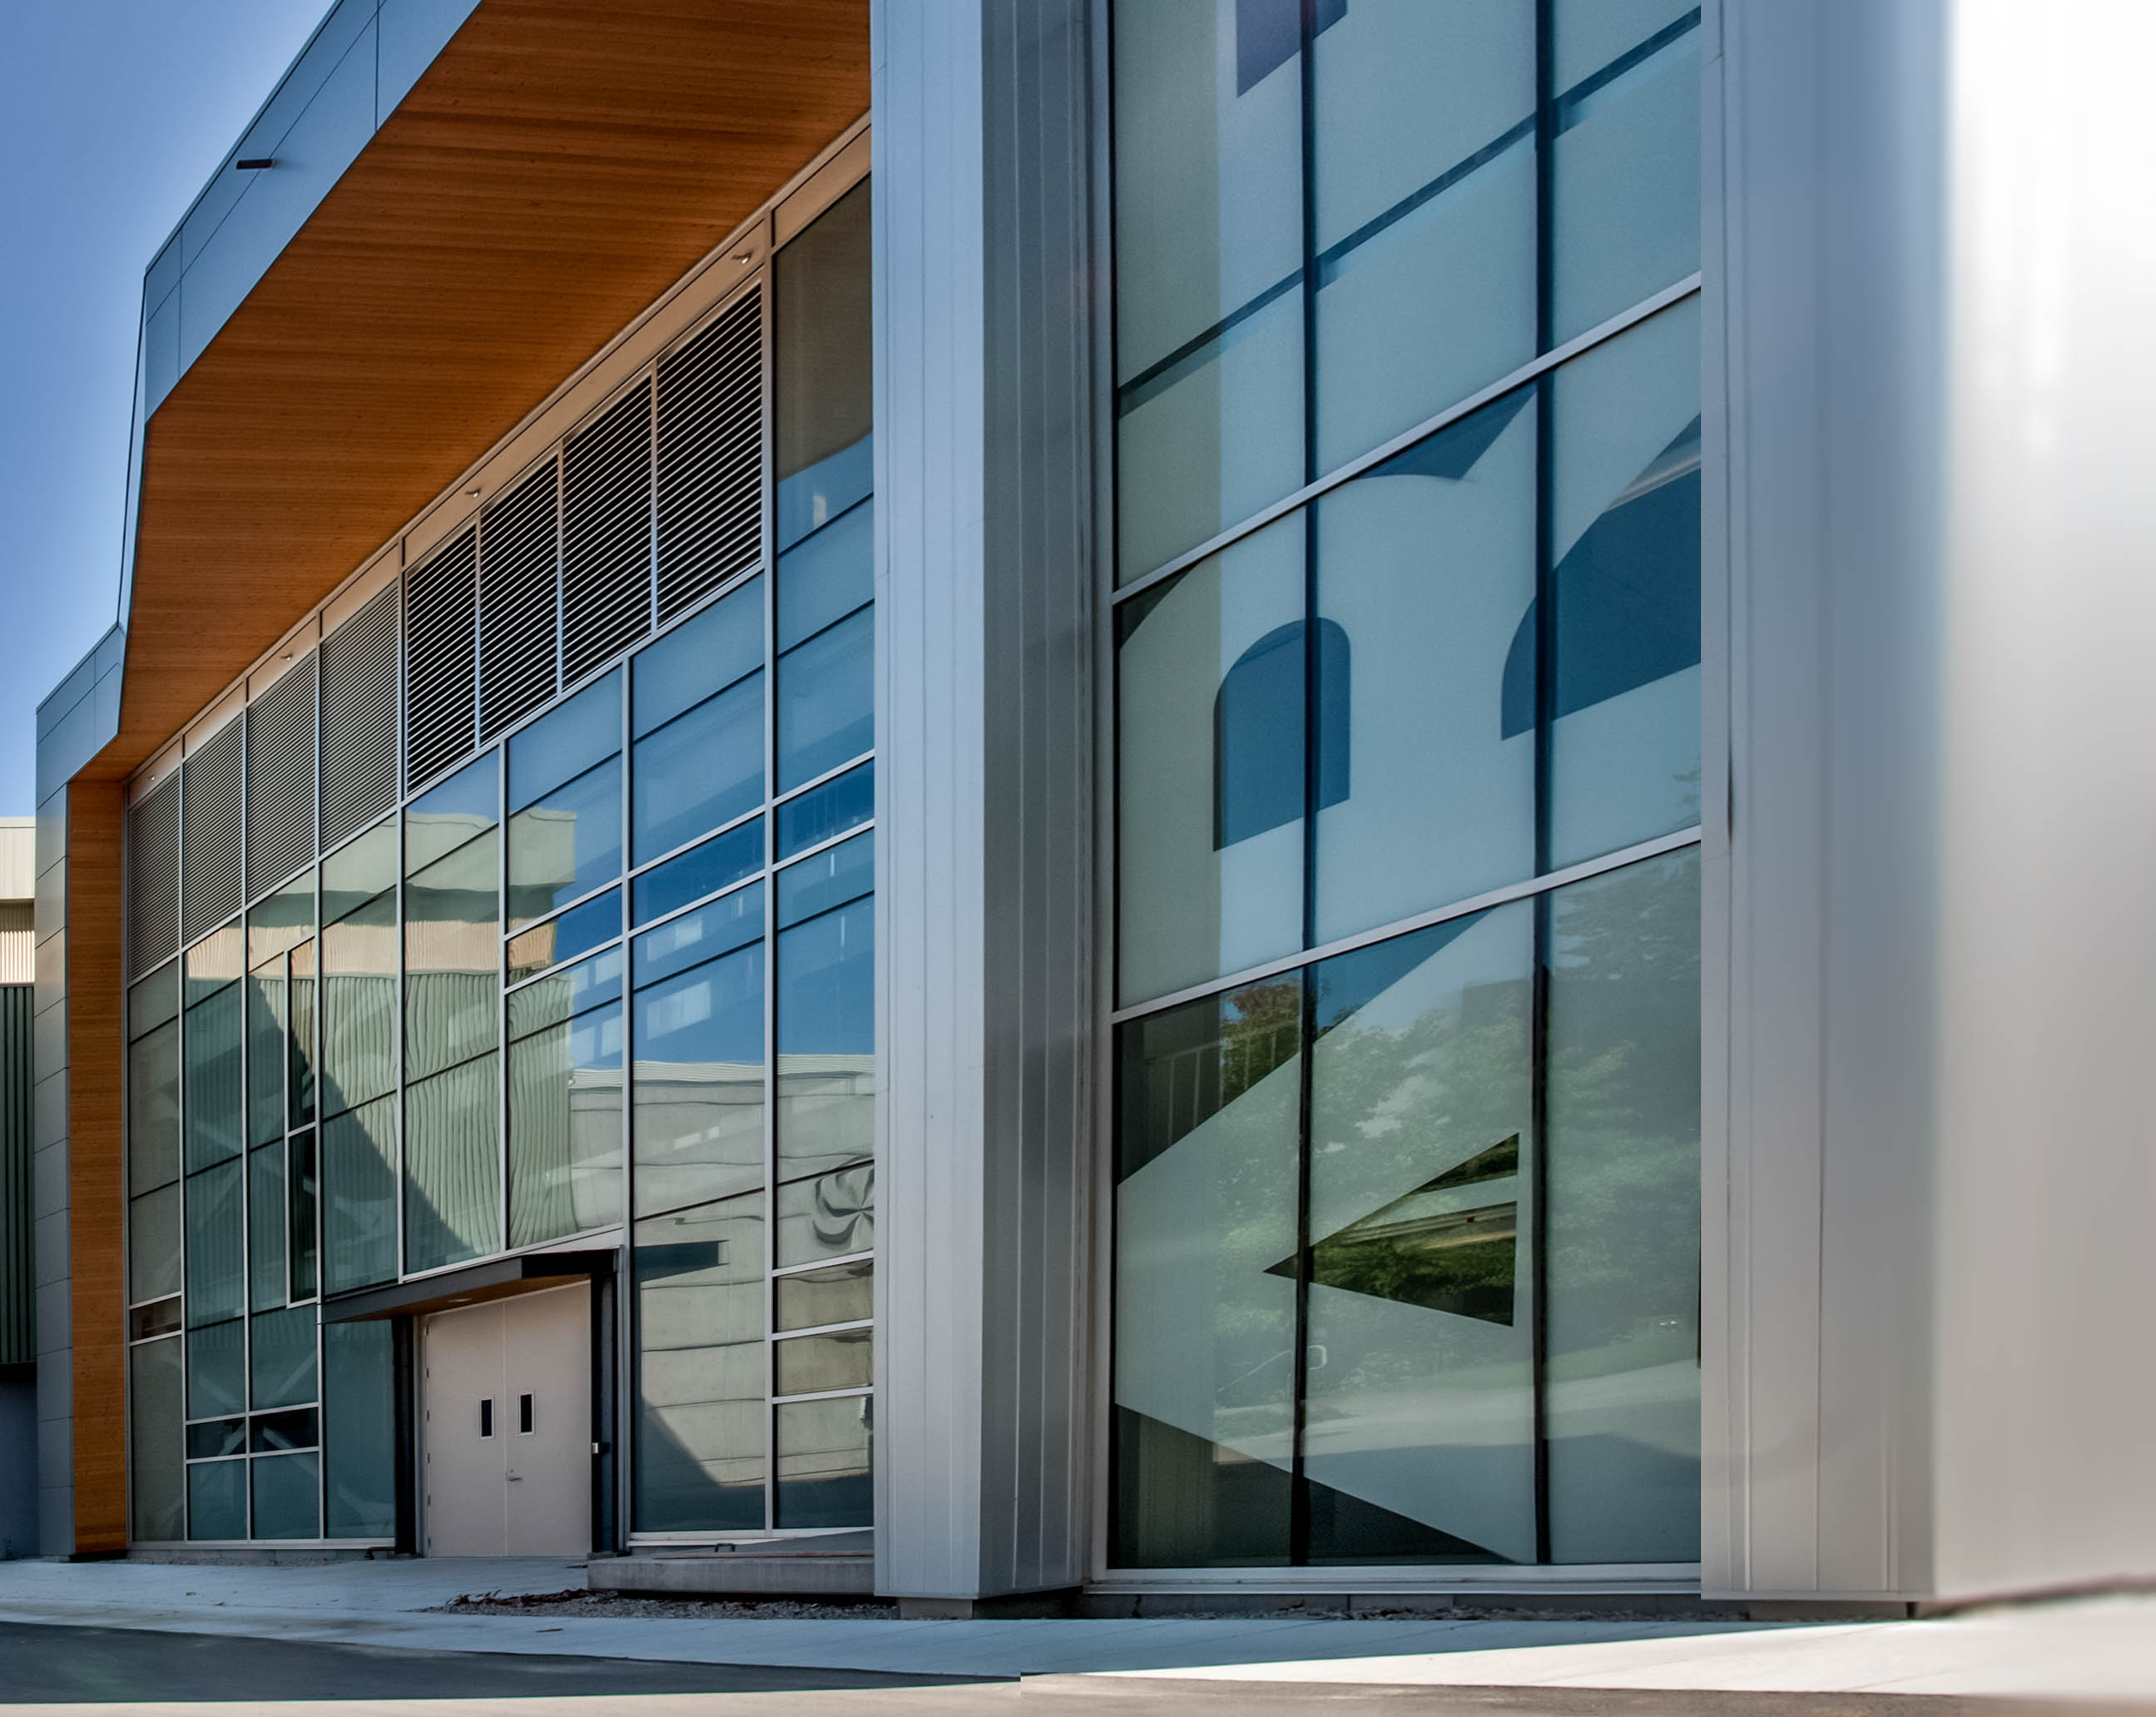 We Offer Many Different Curtain Wall Systems In An Array Of Profiles To  Suit An Extensive Variety Of Performance, Operational, Aesthetic And  Glazing ...